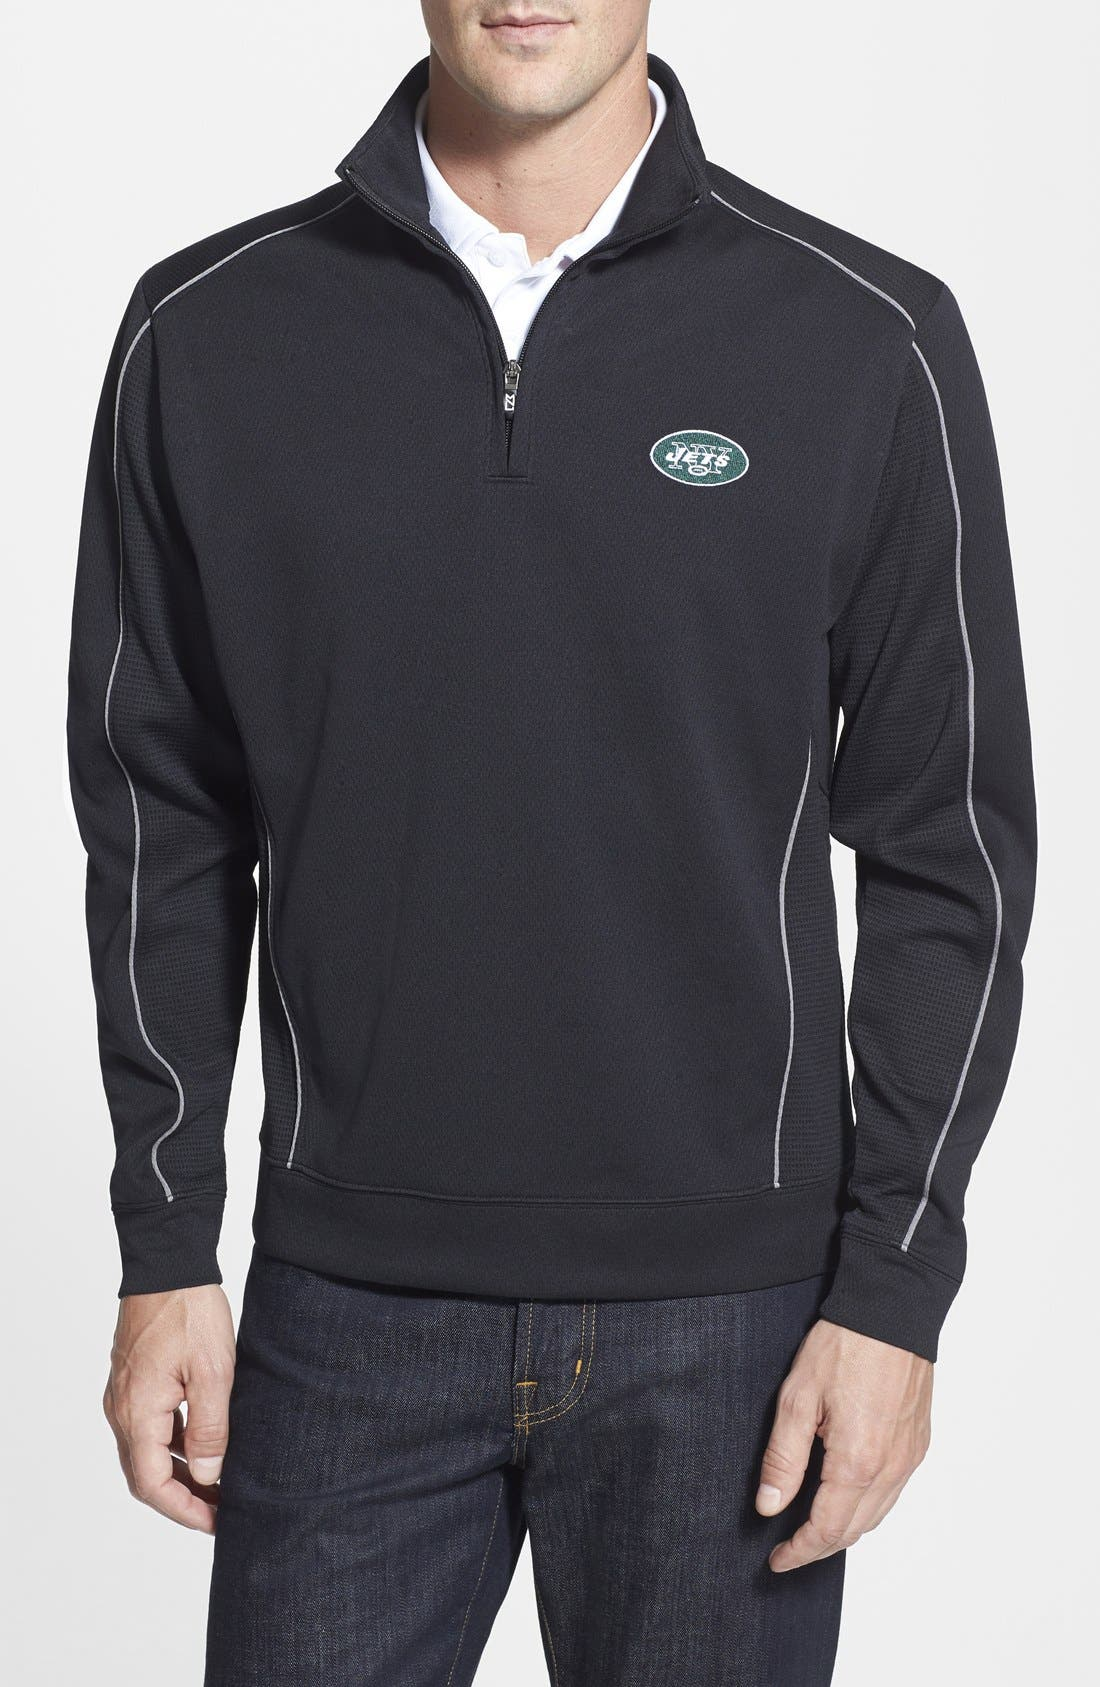 Cutter & Buck 'New York Jets - Edge' DryTec Moisture Wicking Half Zip Pullover